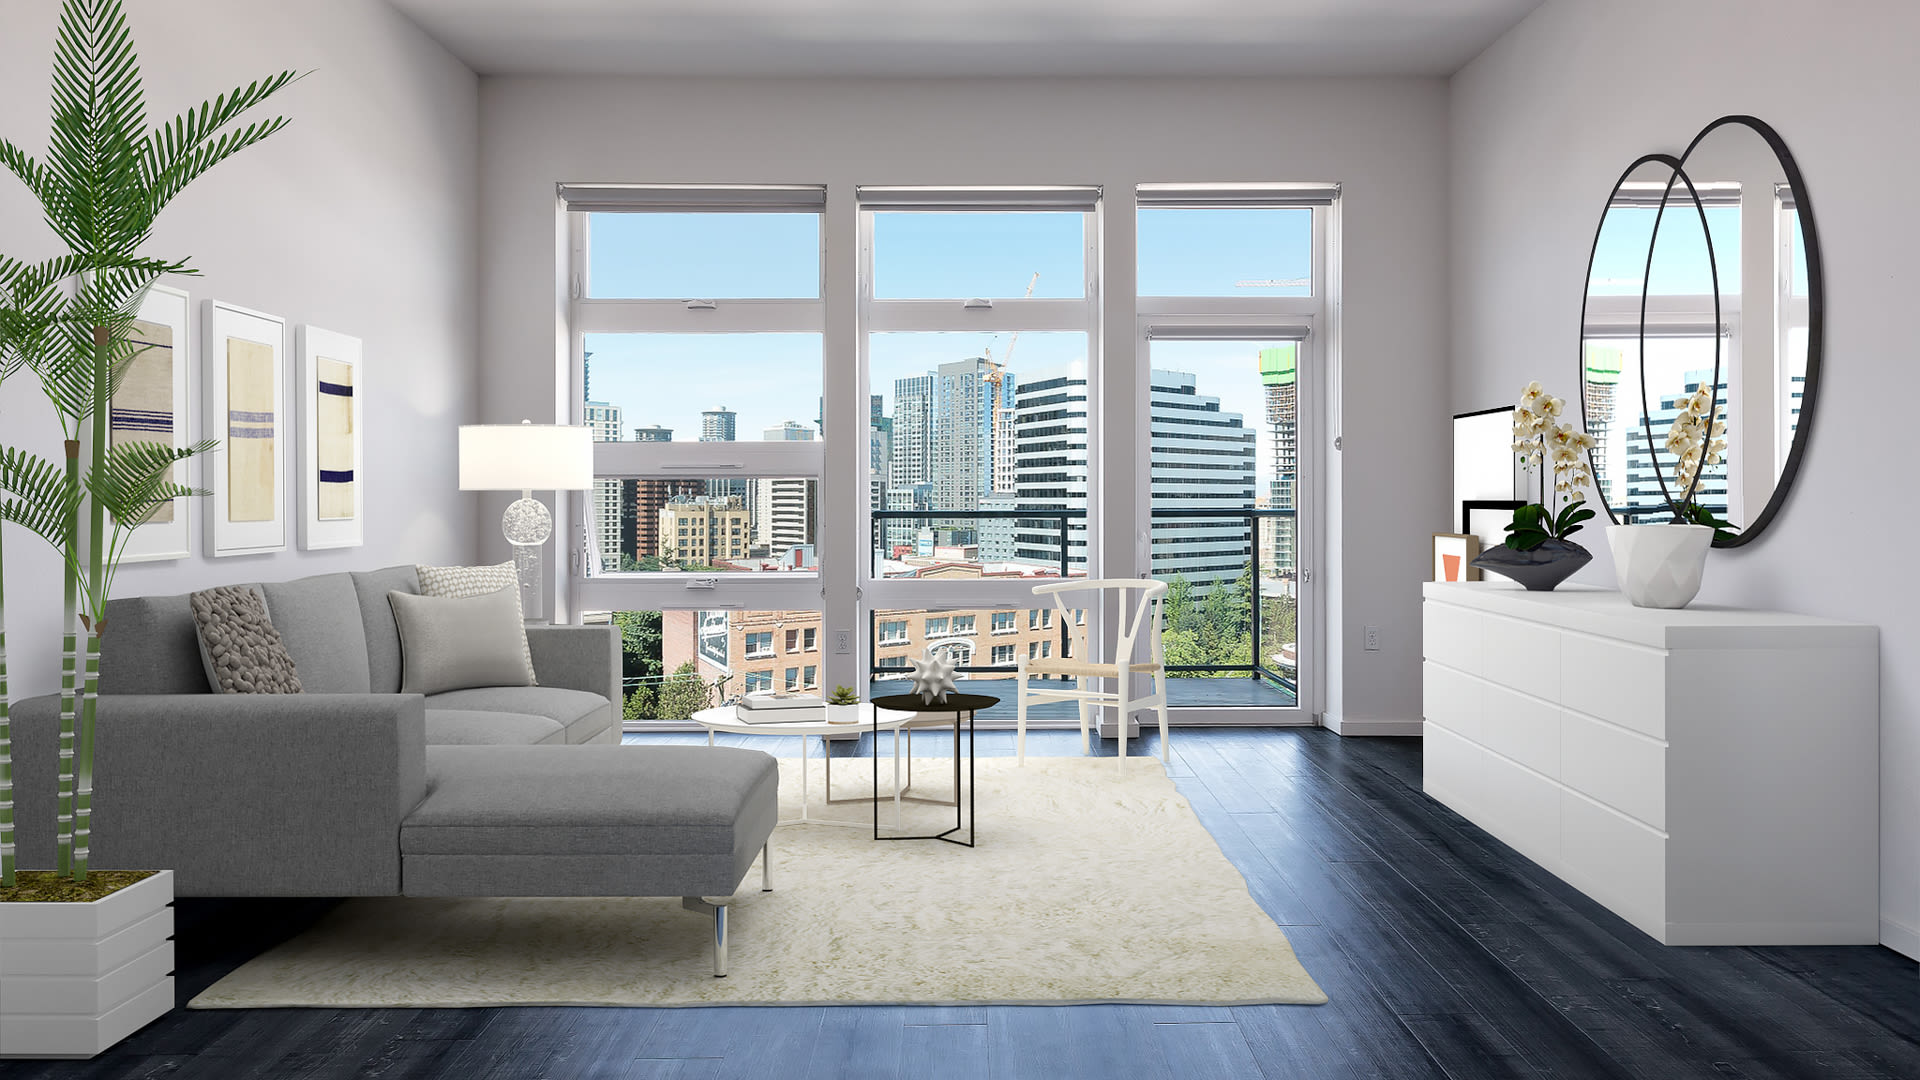 Three20 Apartments - Living Room with Floor-to-Ceiling Windows and Hard Surface Flooring